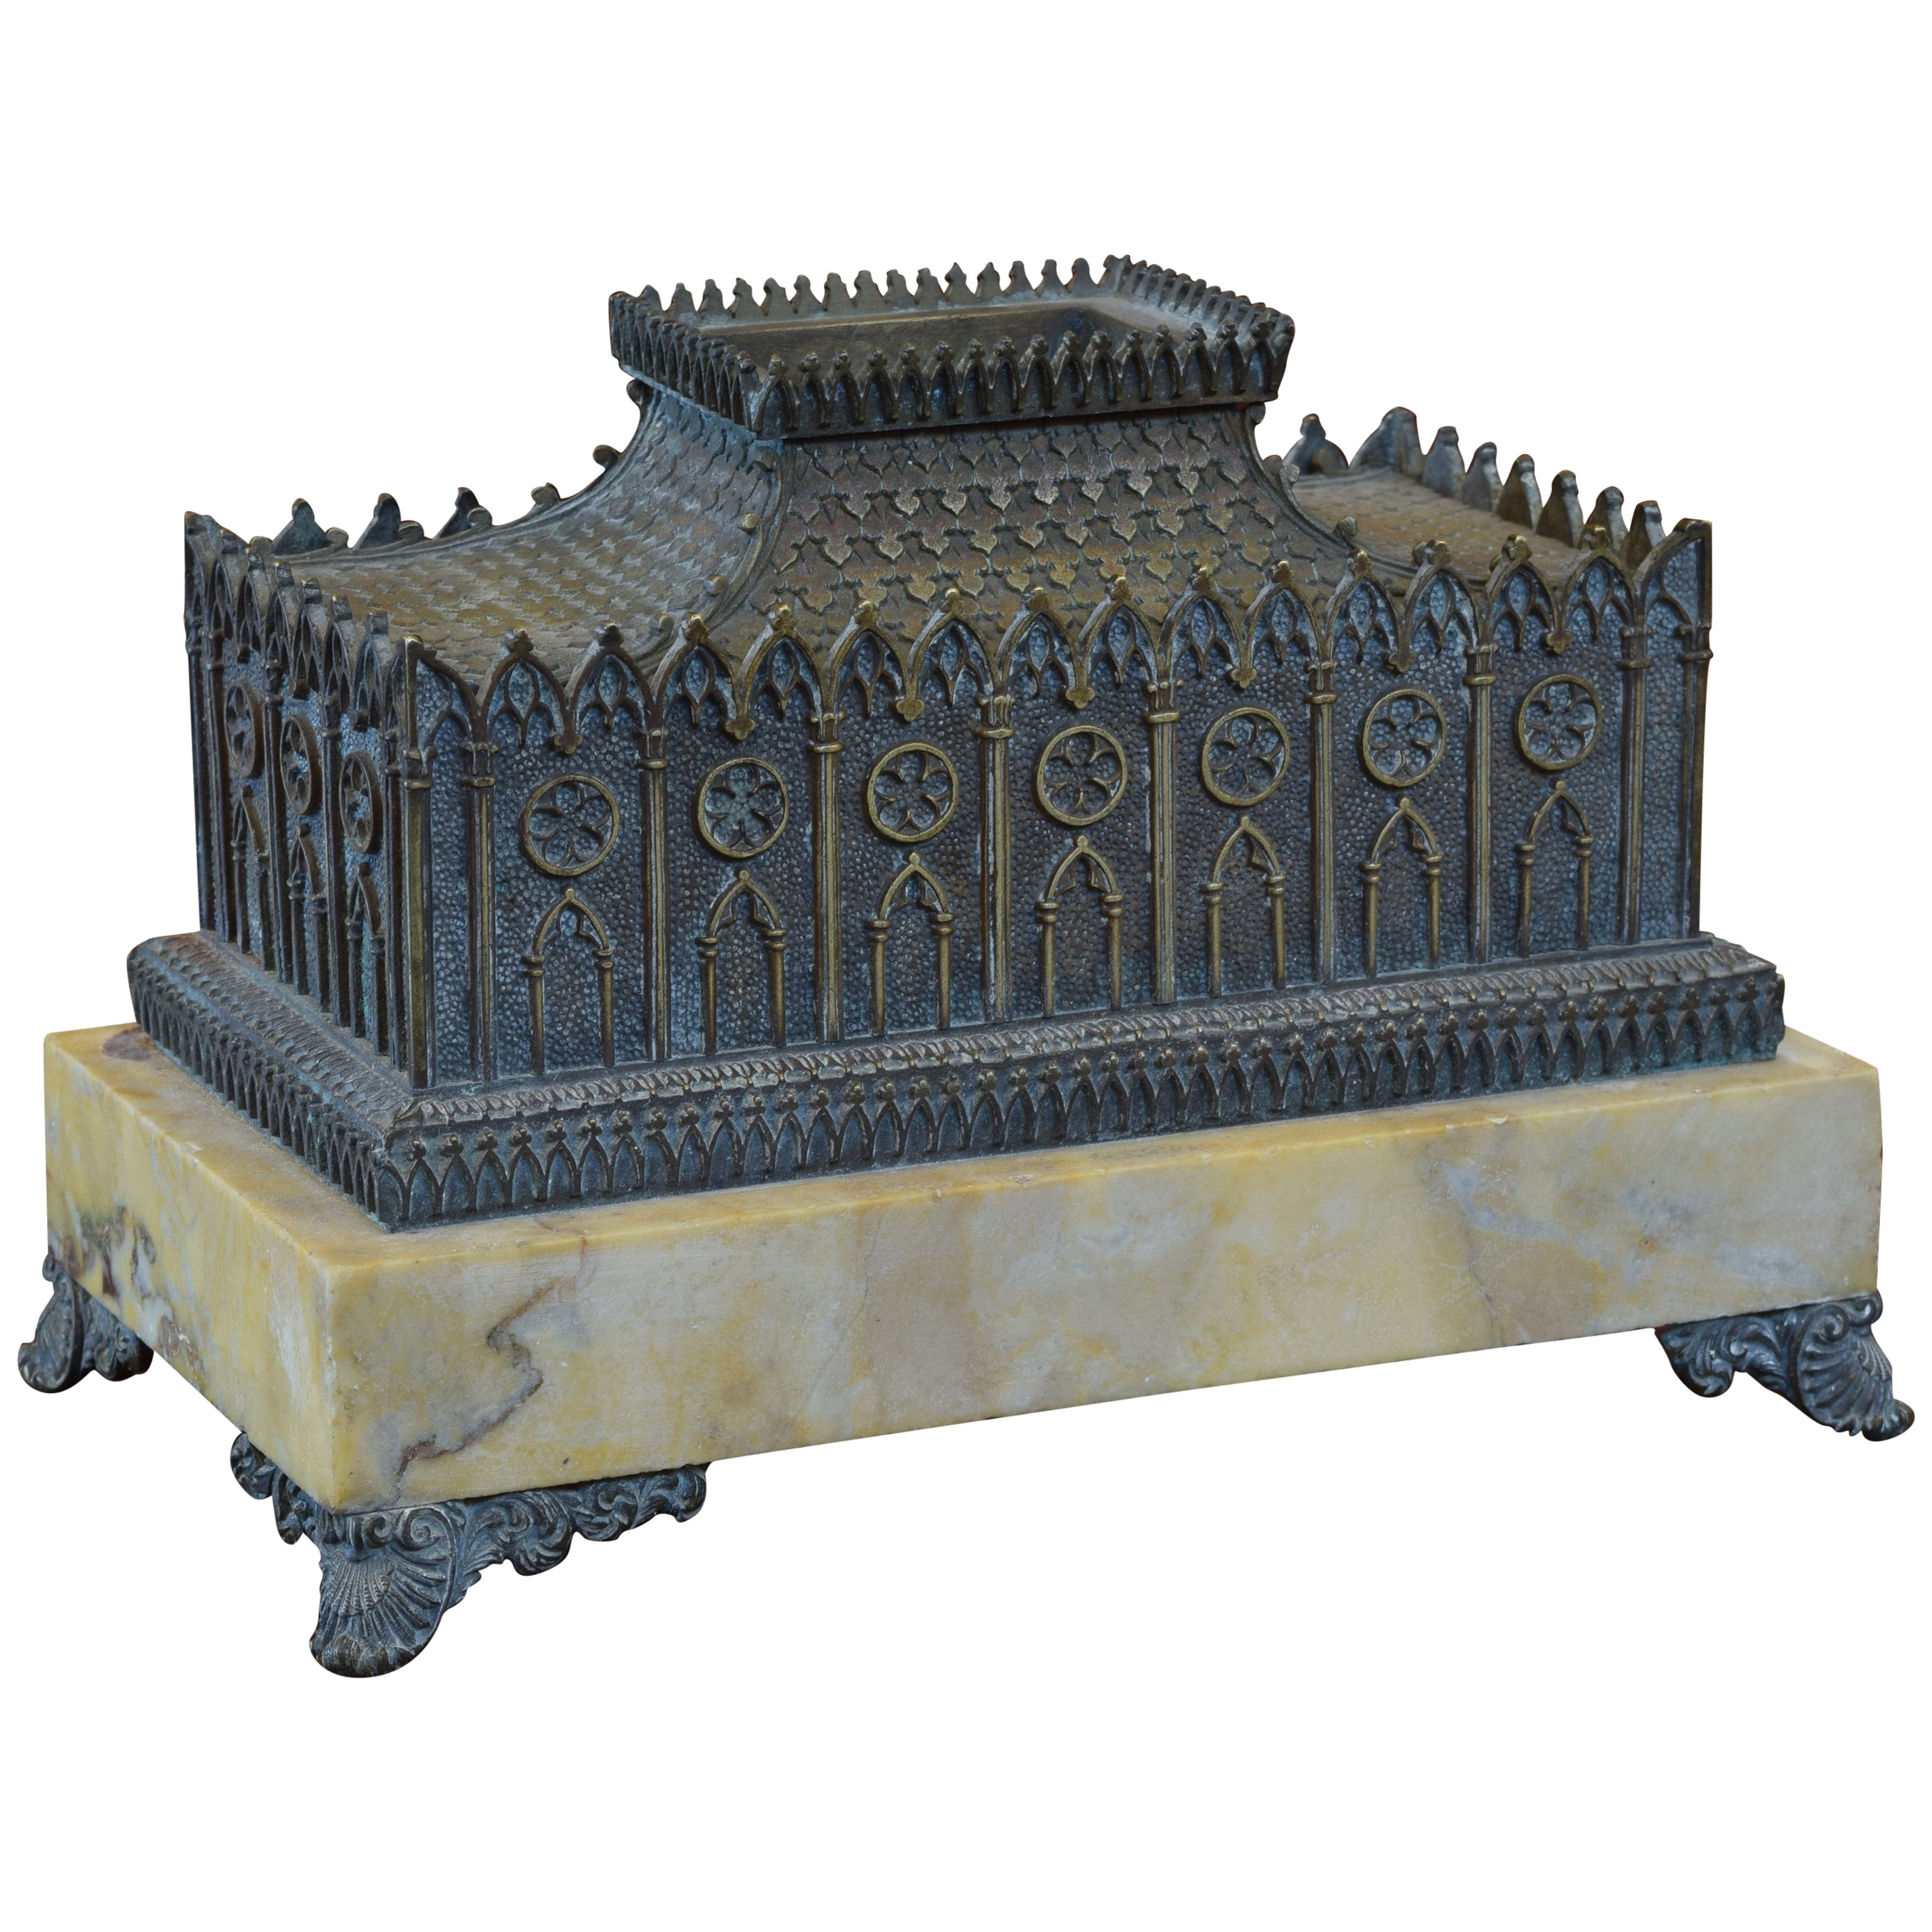 Italian Patinated Brass and Marble Architectural Model Inkwell, circa 1875